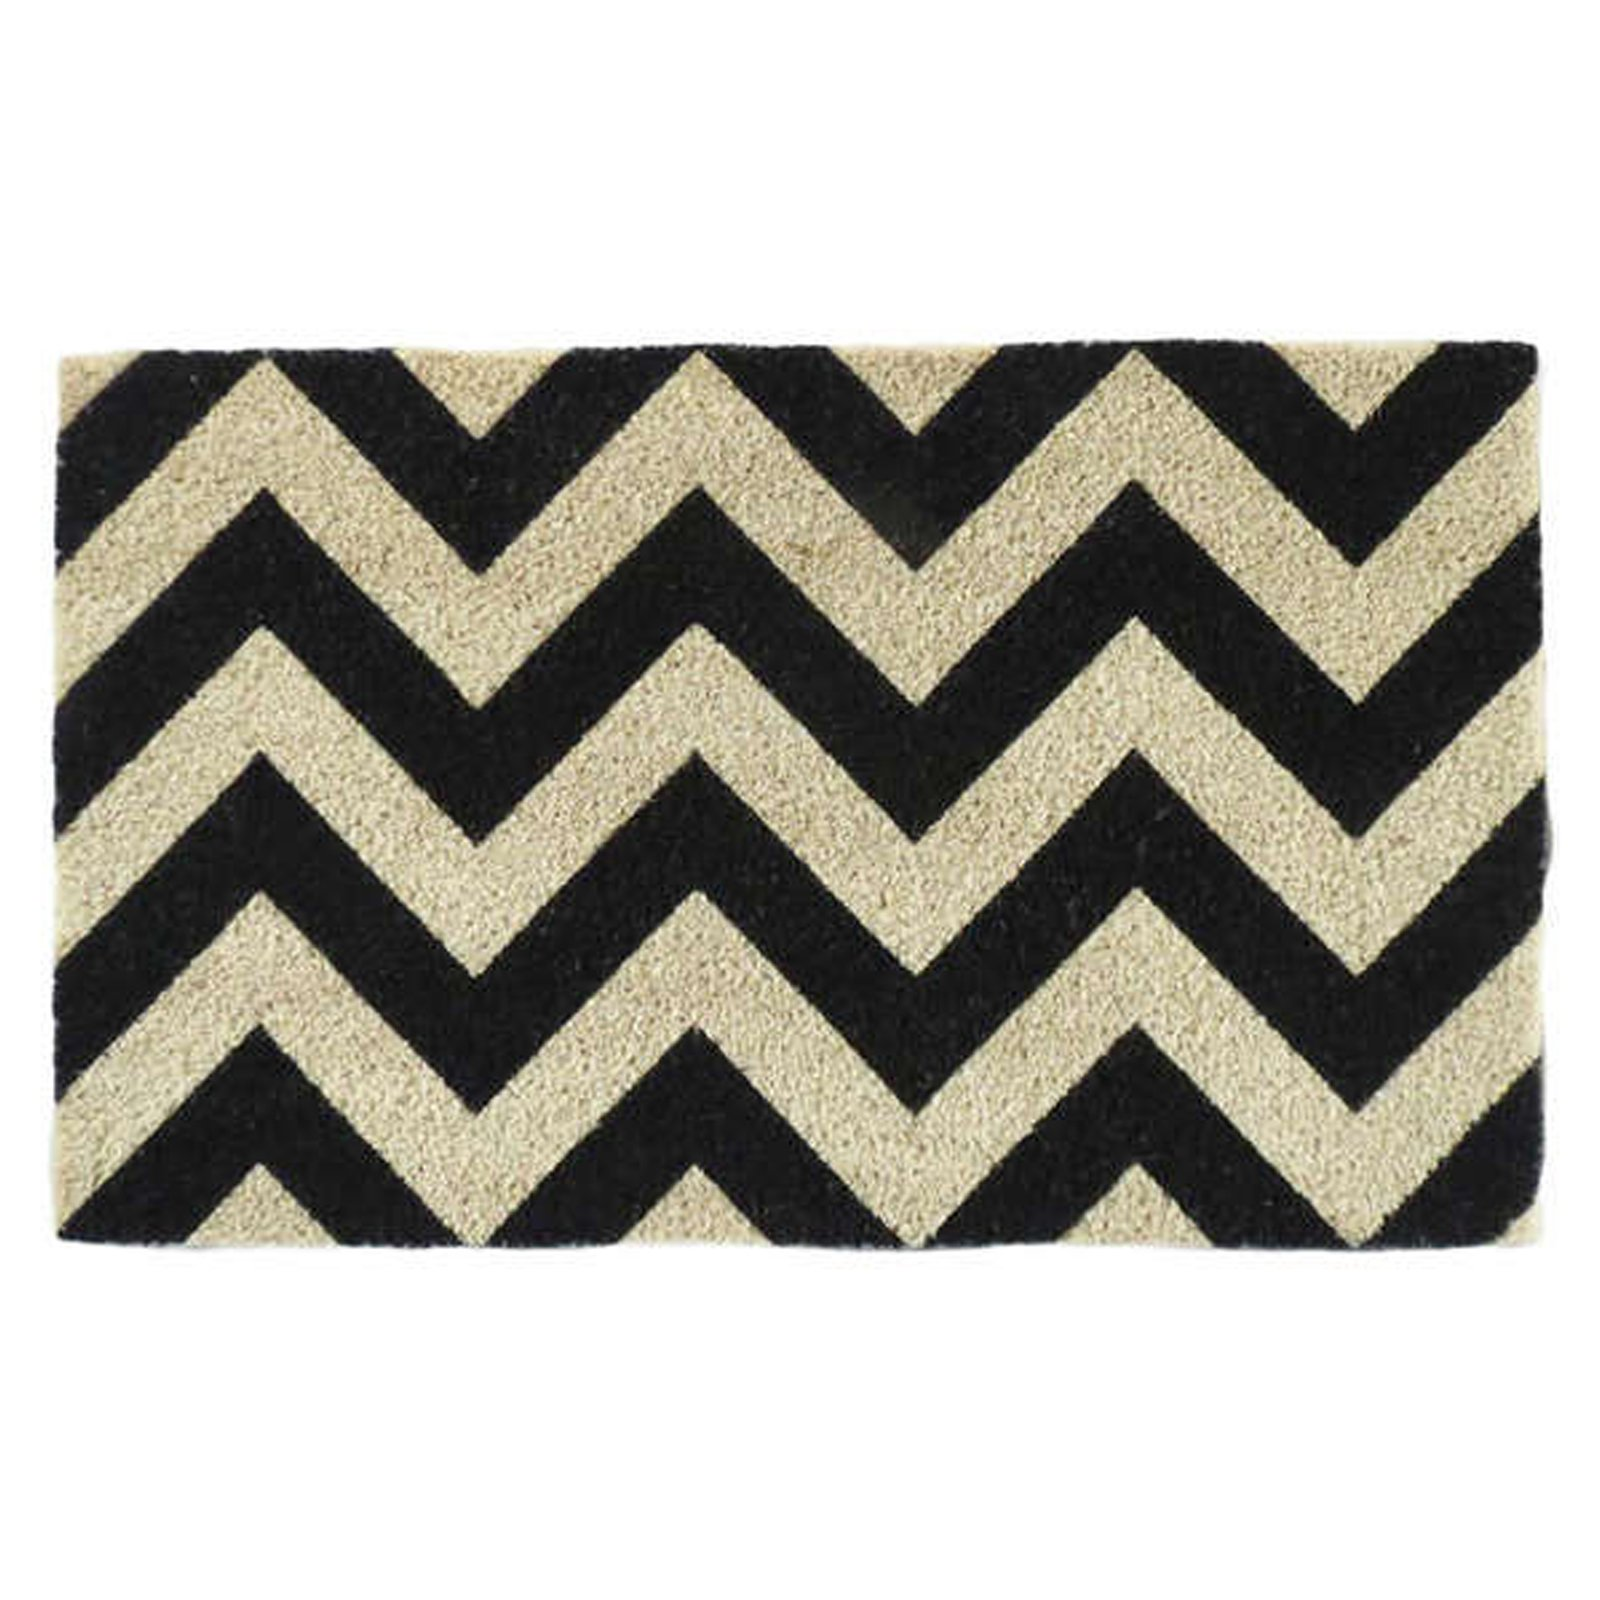 First Impression Chevron Pattern Printed Outdoor Doormat